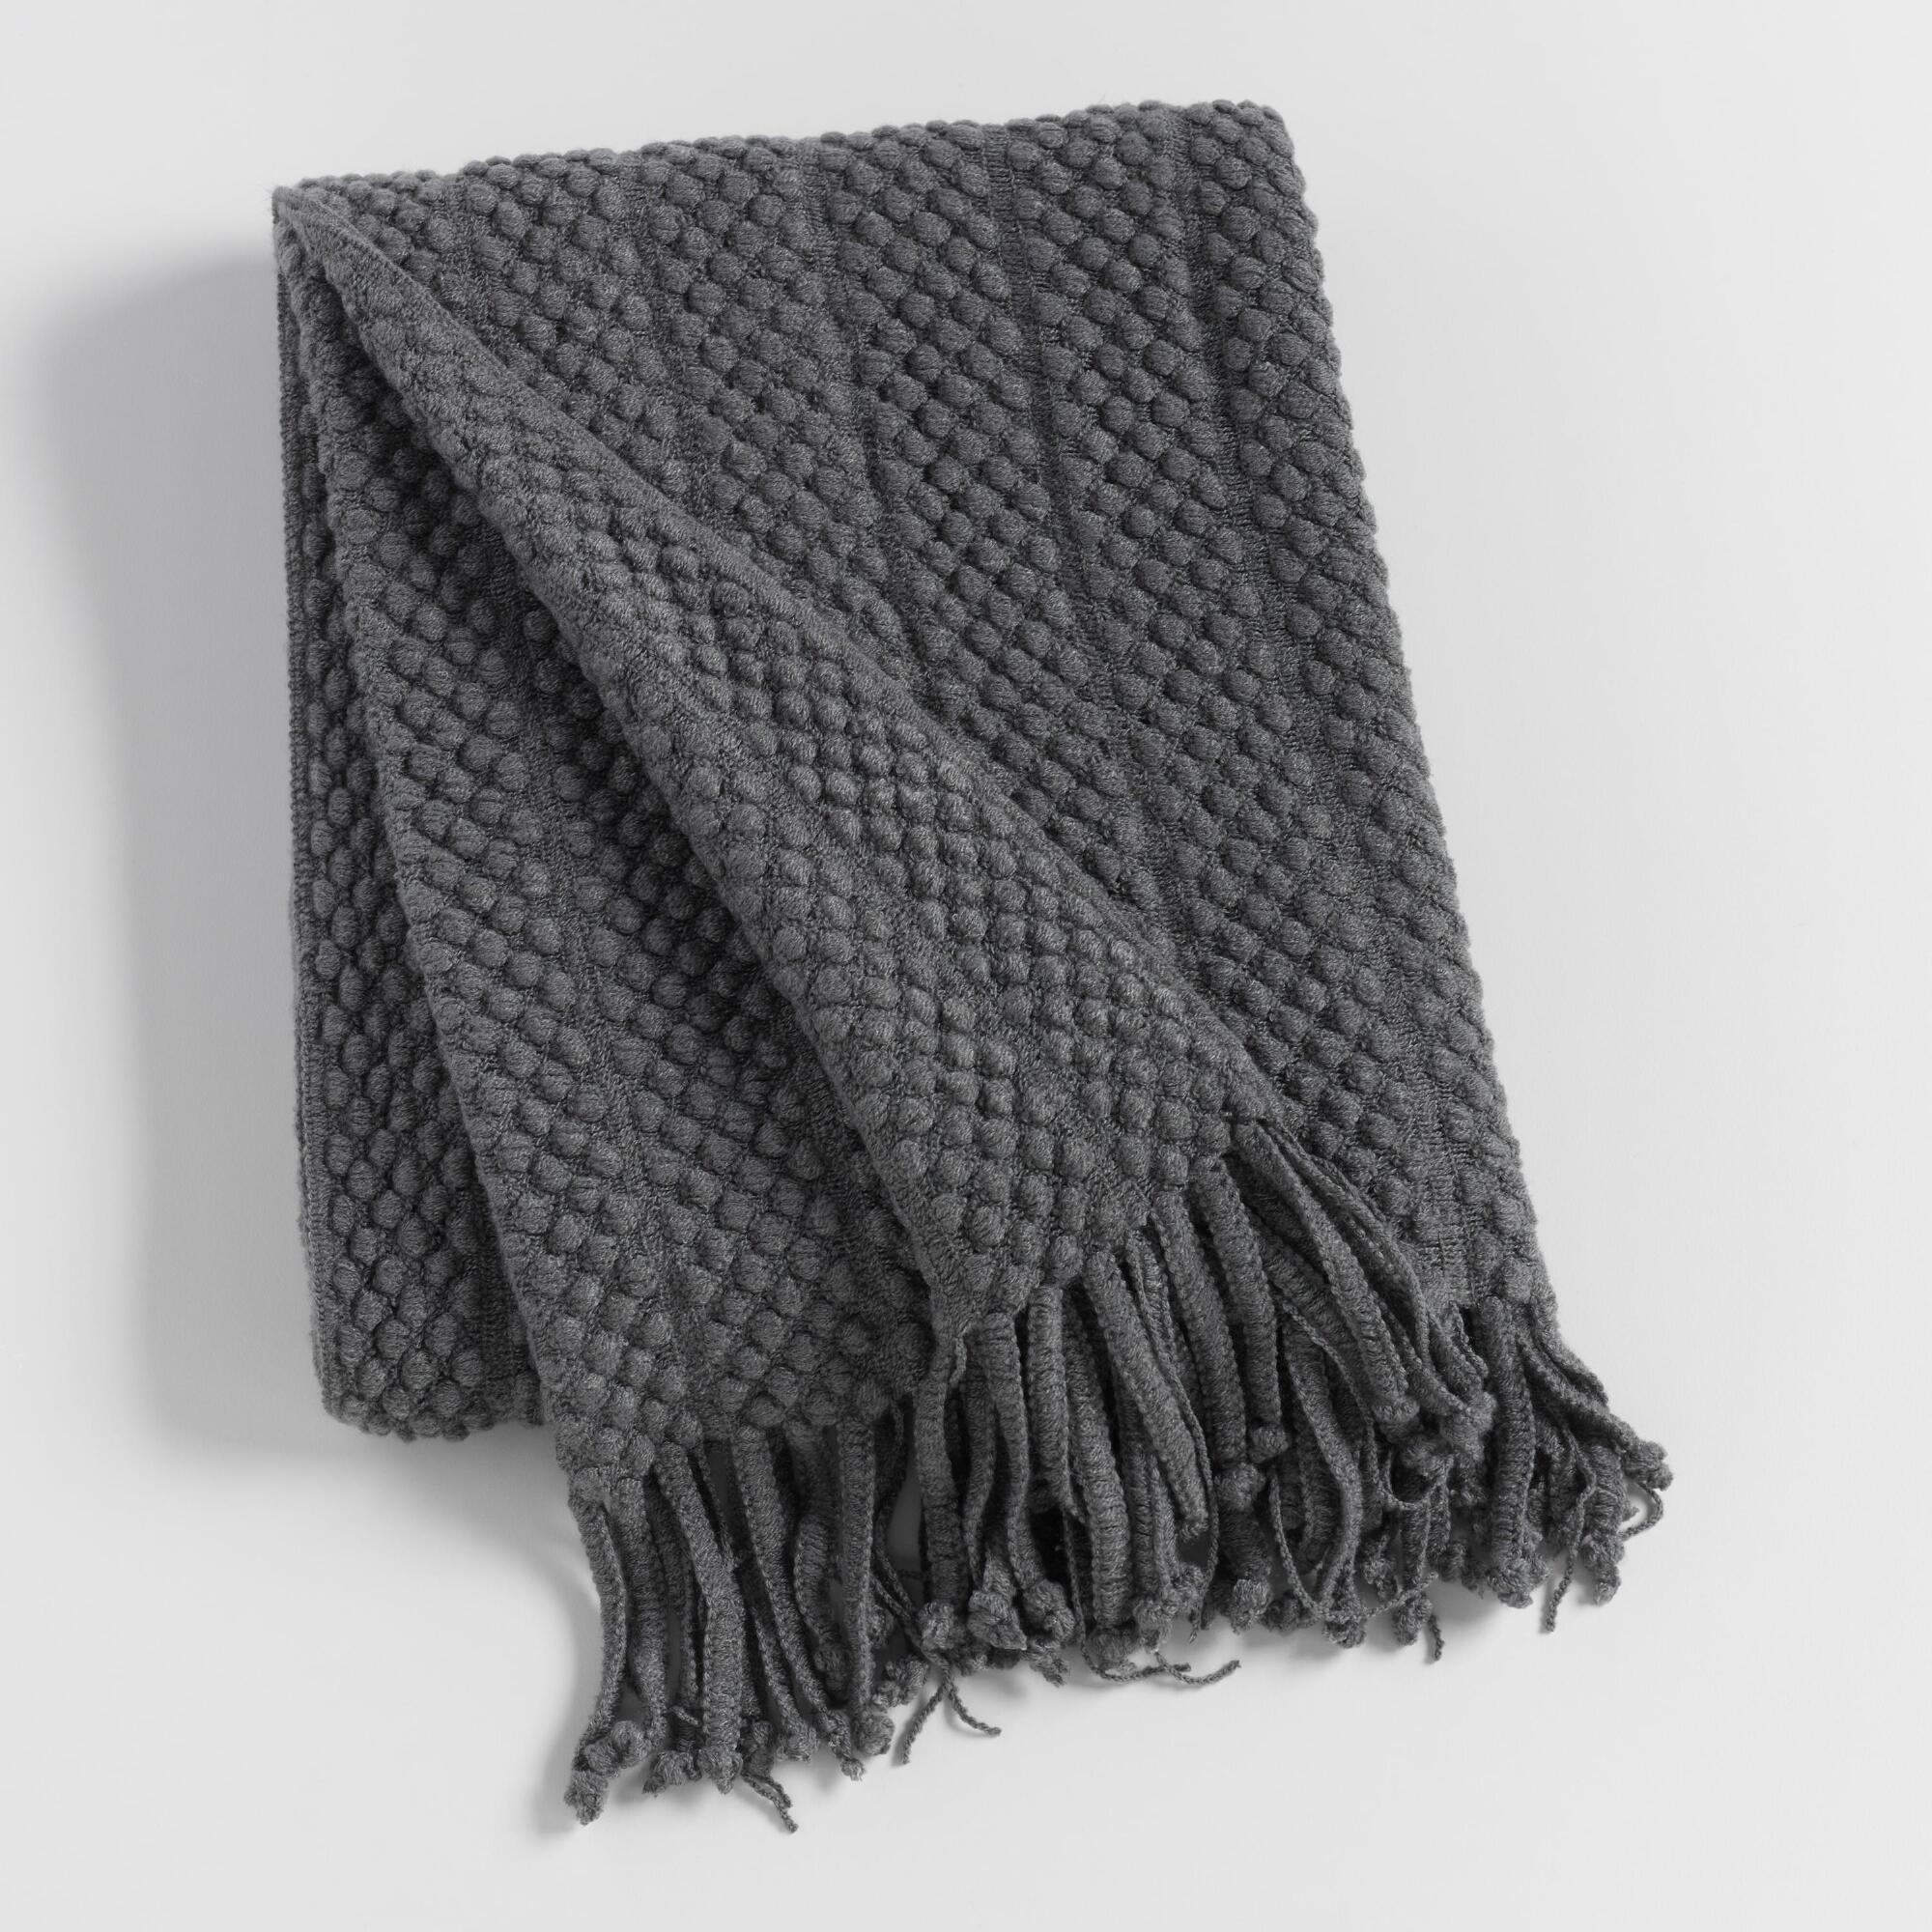 Charcoal Textured Throw: Gray - Acrylic by World Market